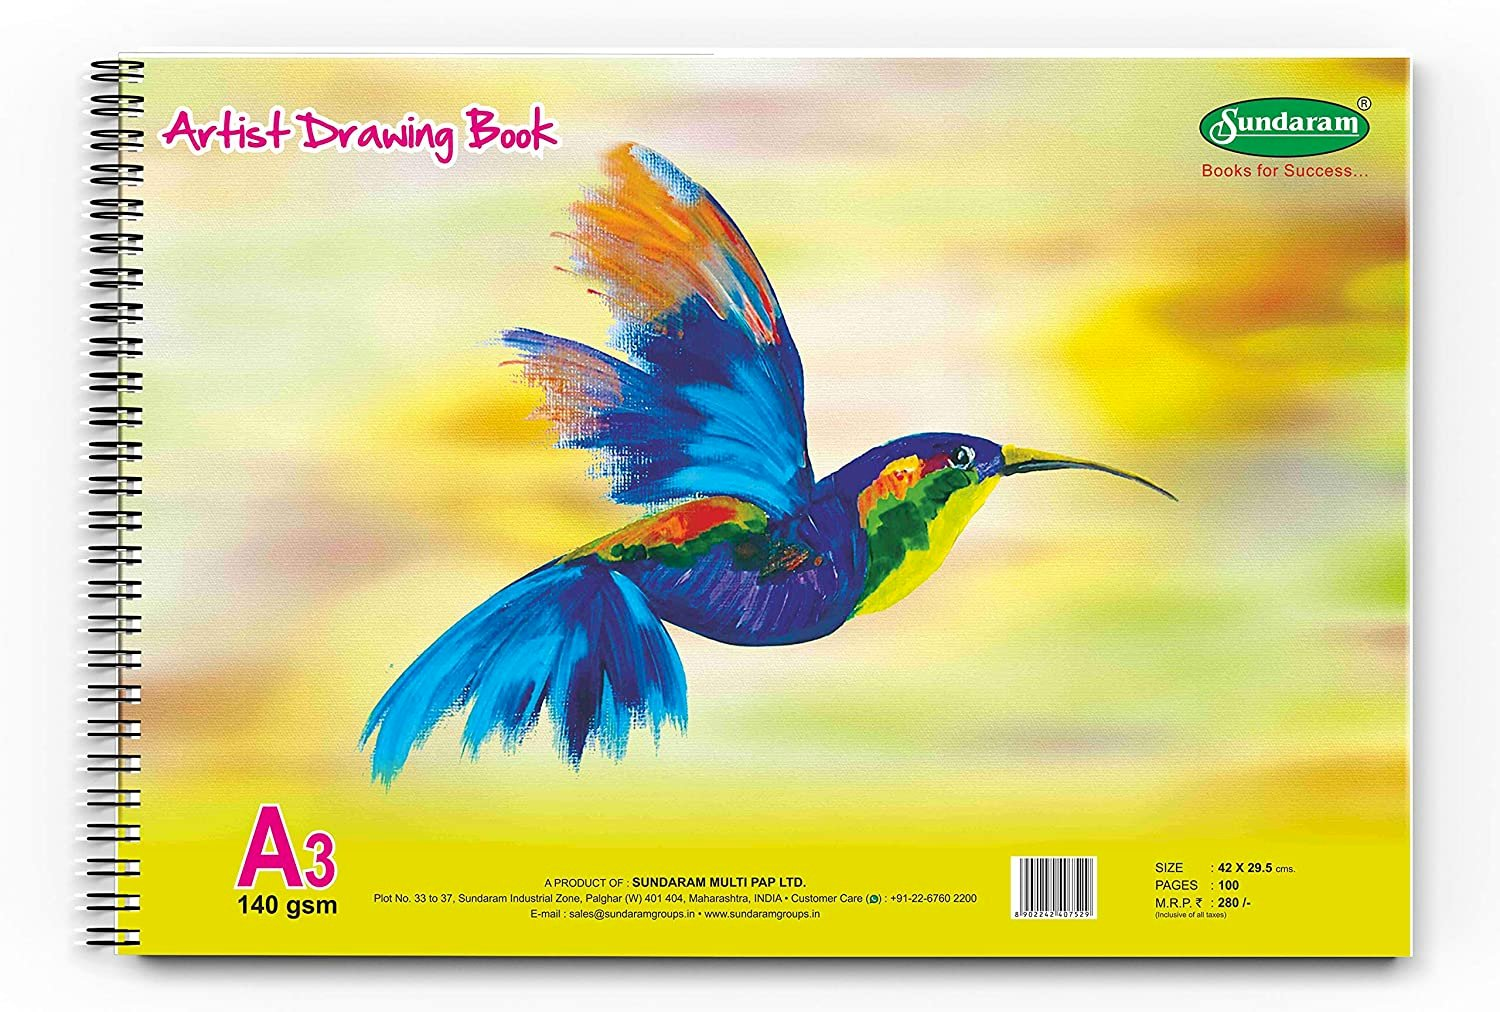 Sundaram D-12 Artist Drawing Book - A3-100 Pages - Pack of 1 Pcs Design As per Availability